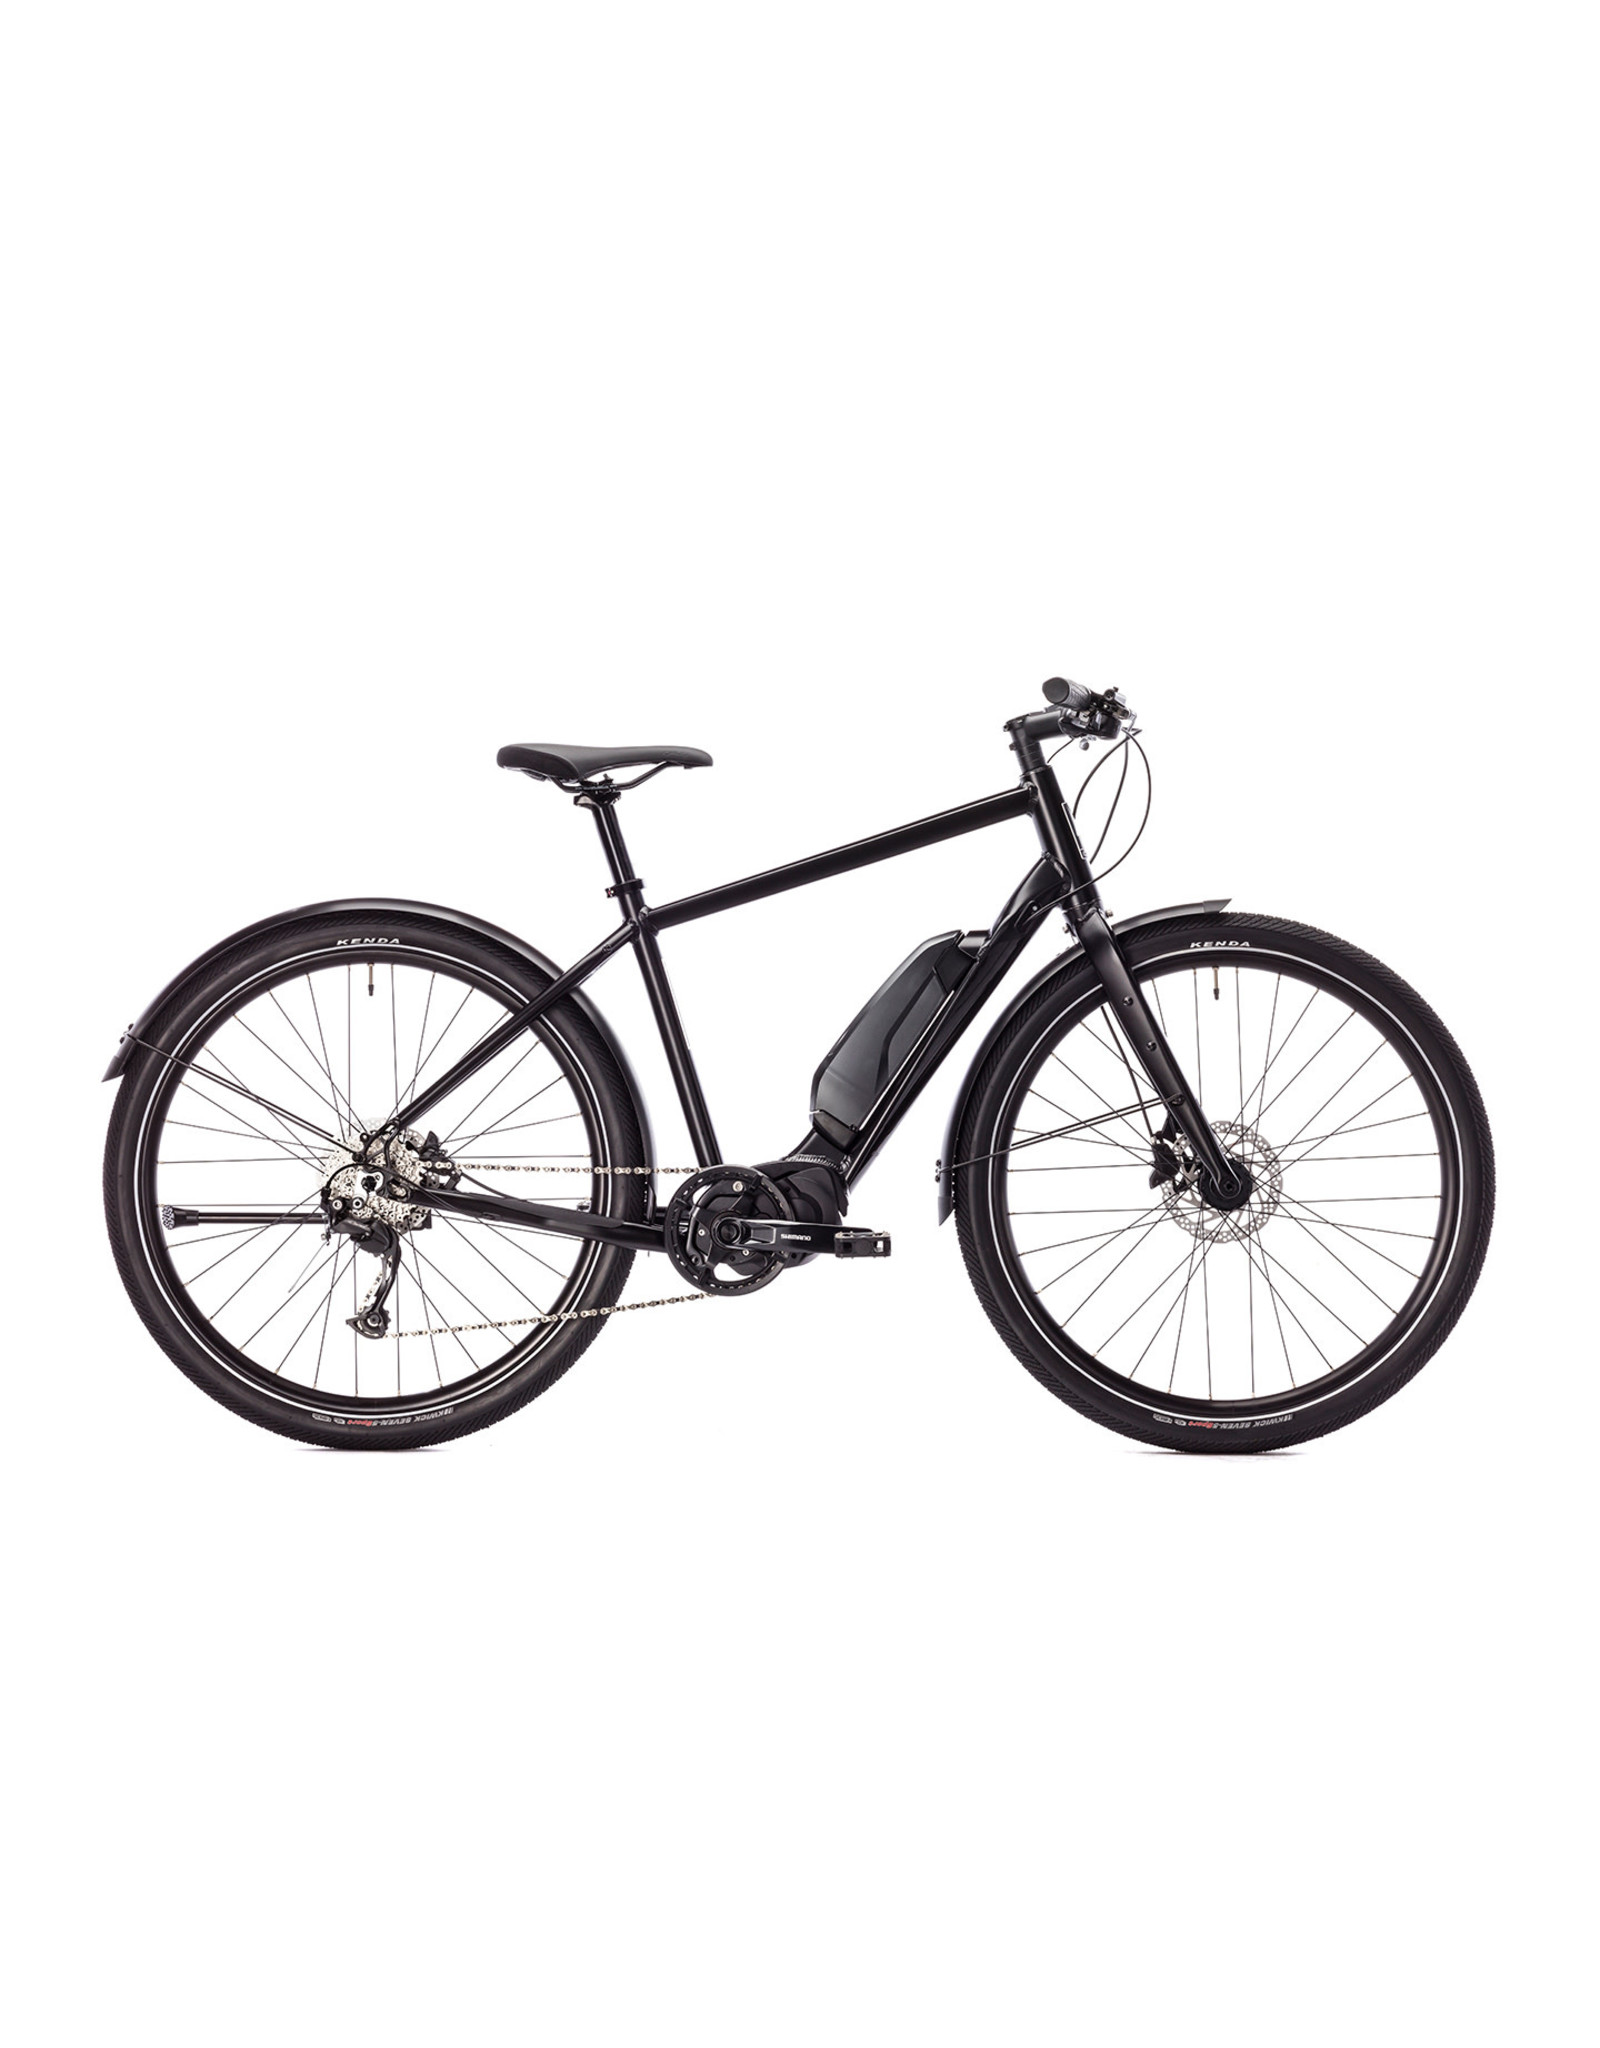 OPUS OPUS E-BIG CITY STEPS 5000 EBIKE STEALTH BLACK 21